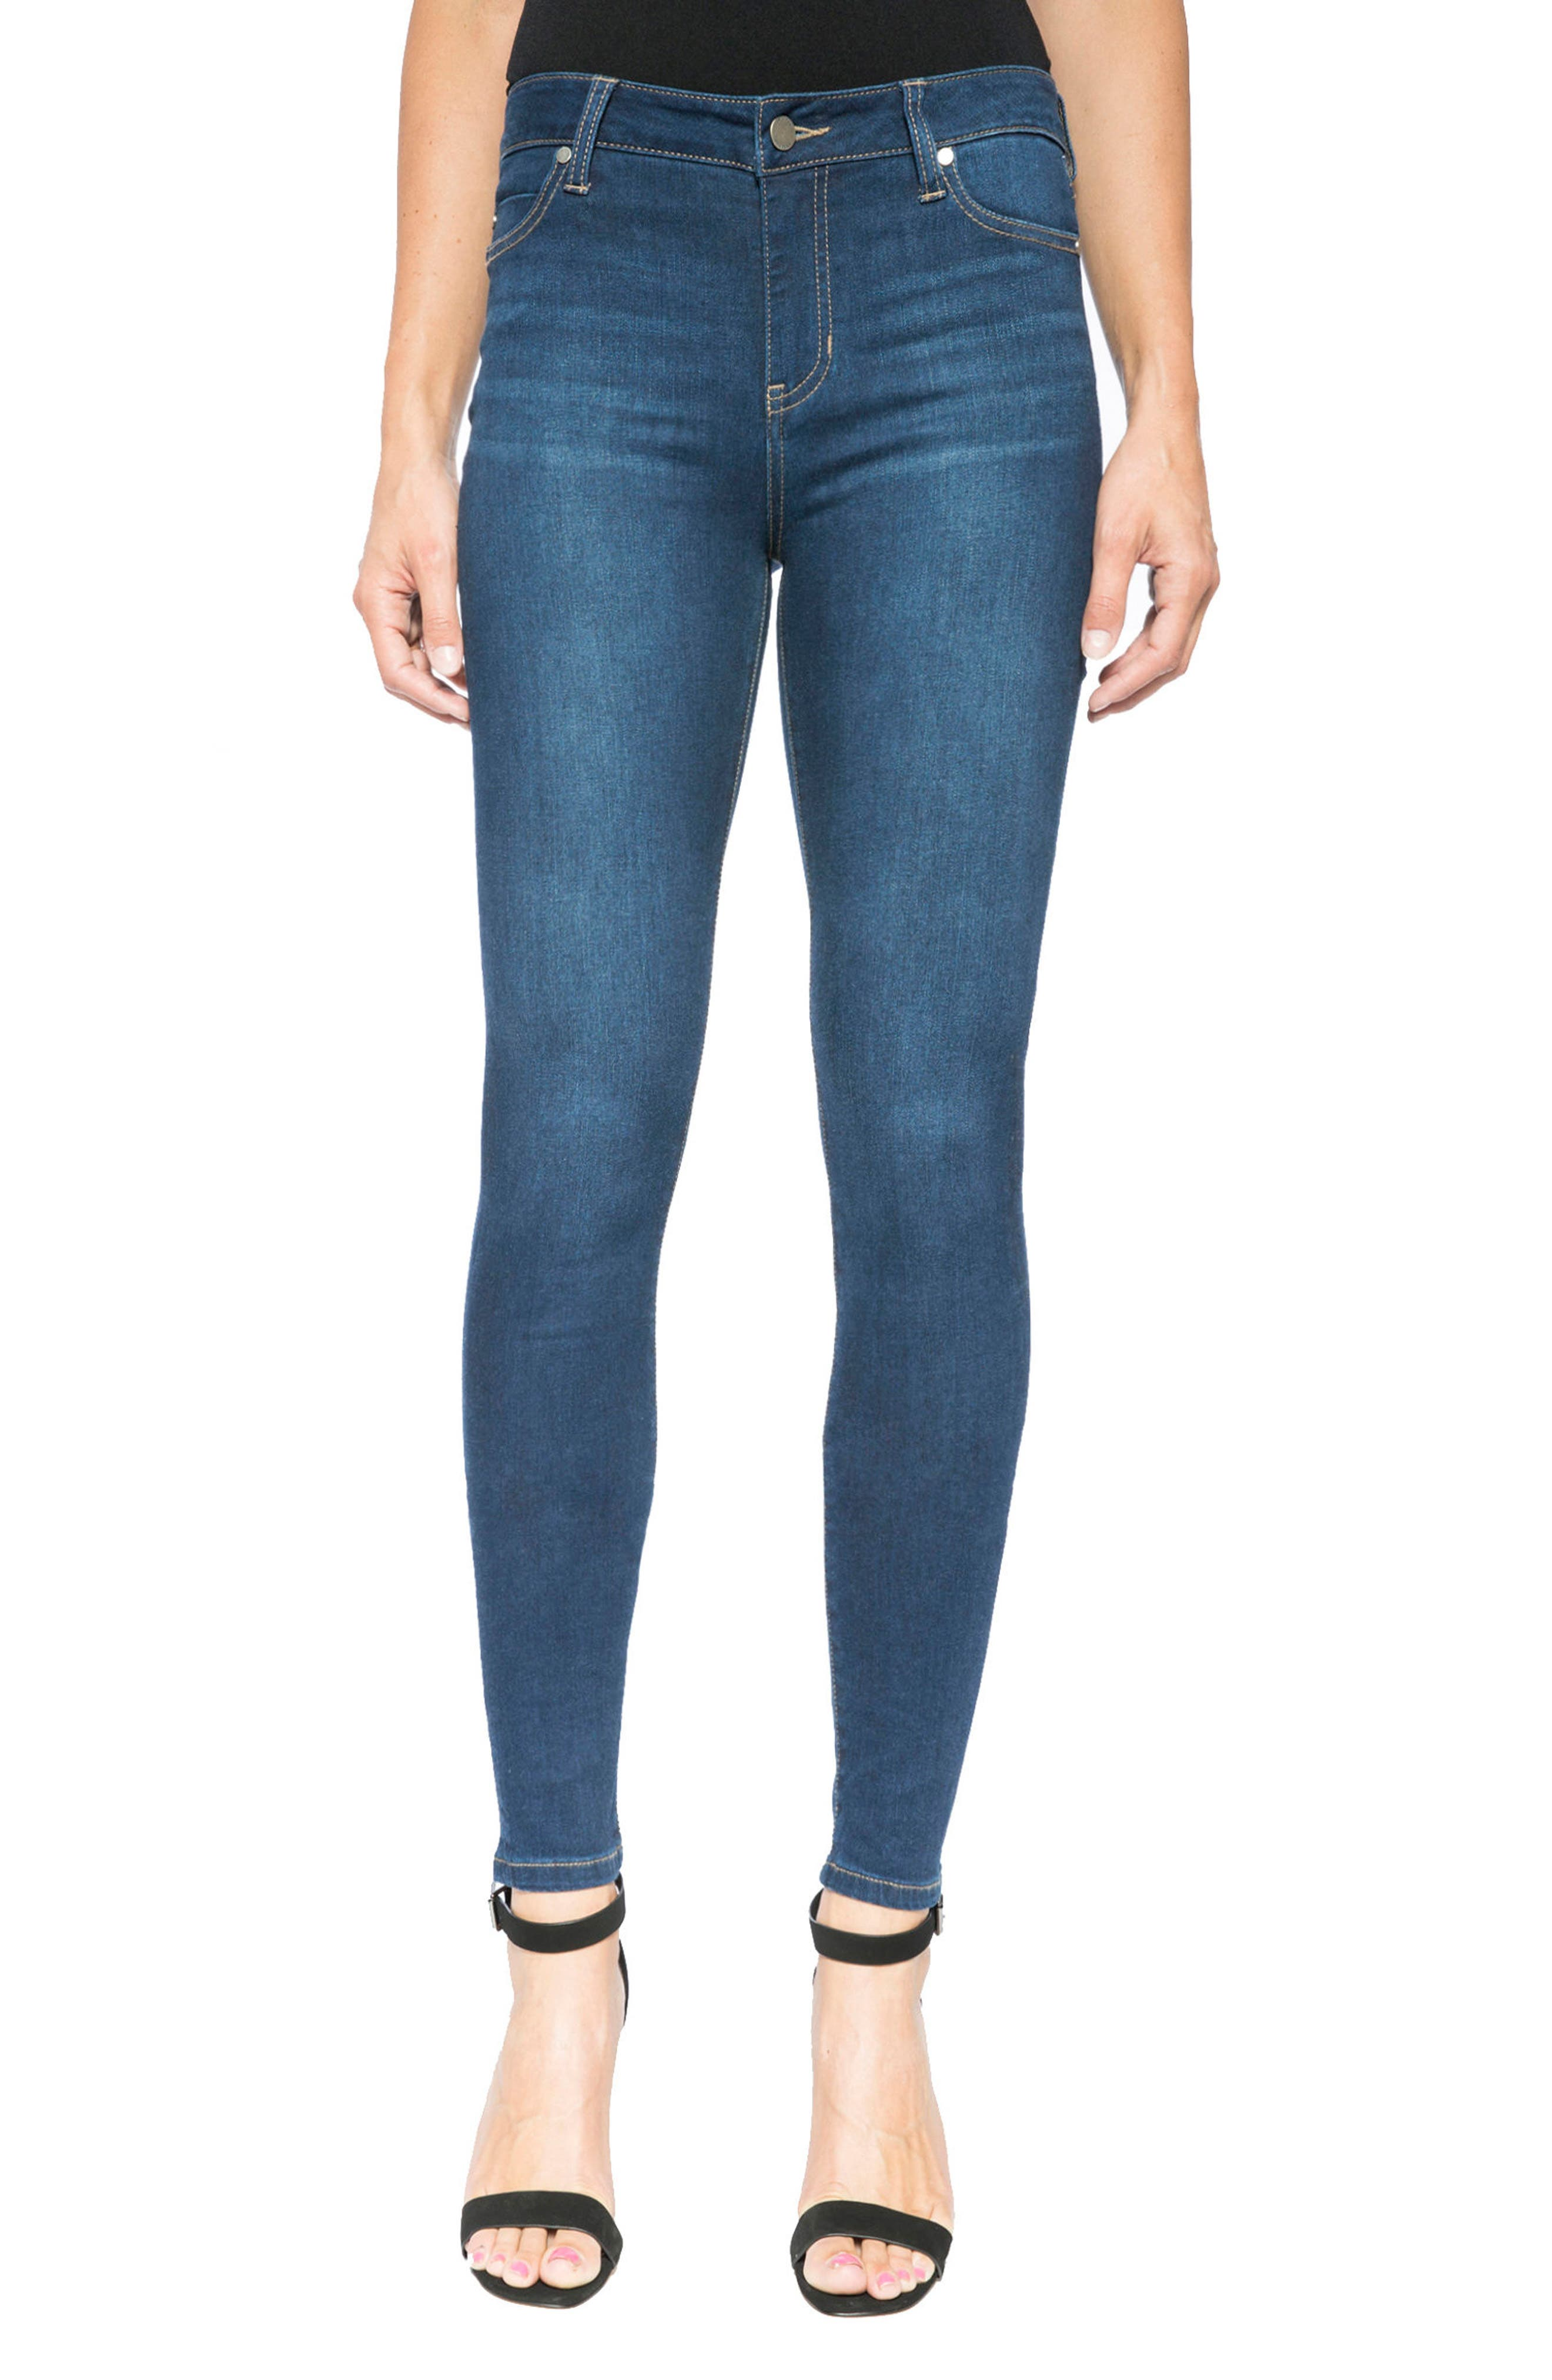 LIVERPOOL JEANS COMPANY Abby Stretch Curvy Fit Skinny Jeans